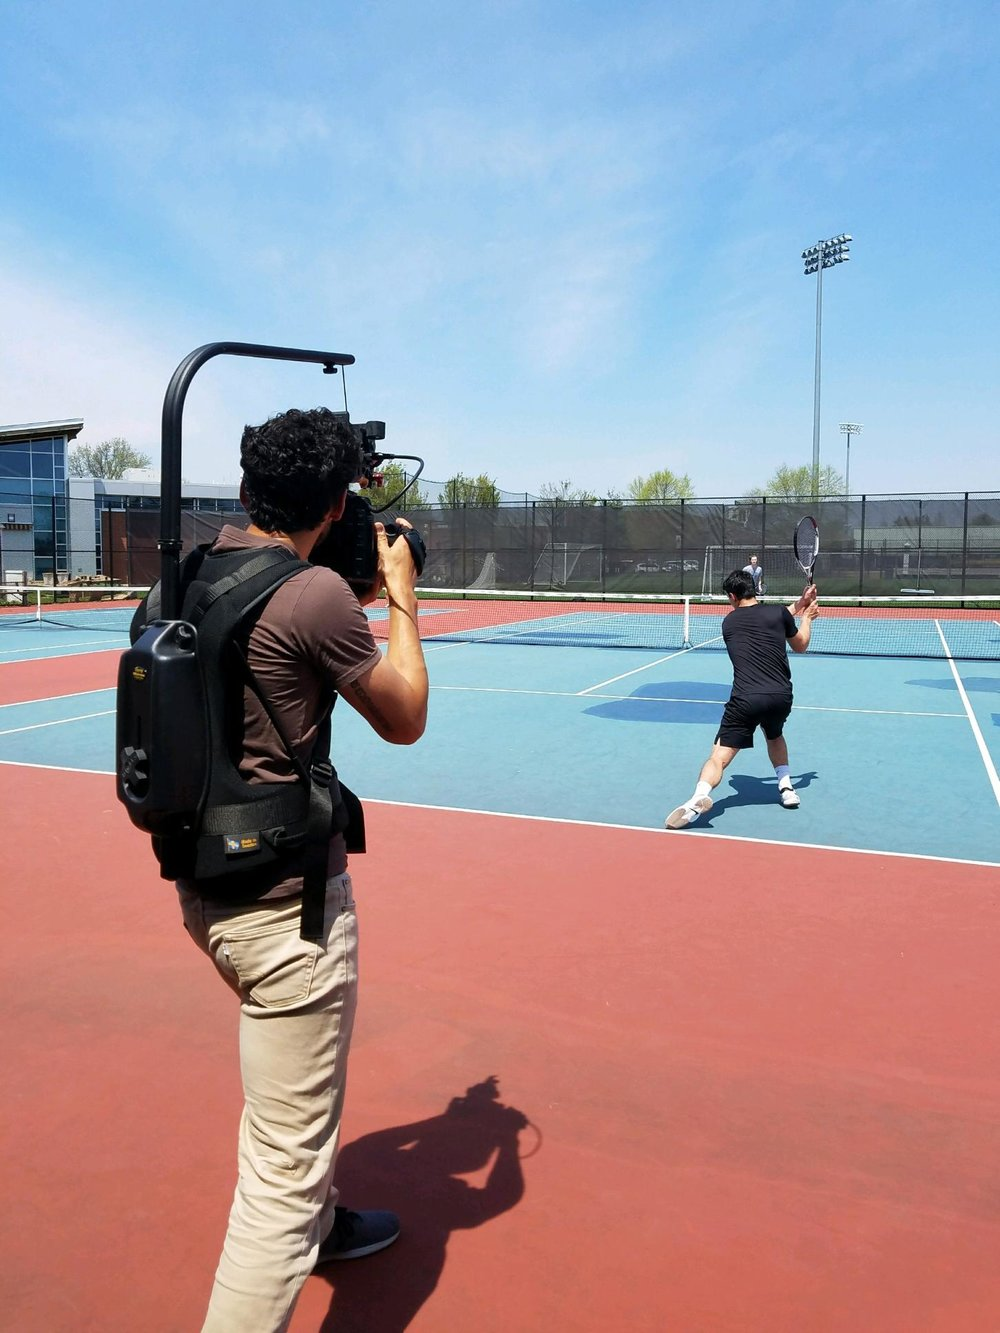 Using my Easyrig Mini and Canon c300 Mark II to shoot b-roll of tennis action shots with Matteo on a 90 degree day. That surface gets hot enough to fry your feet in your shoes.